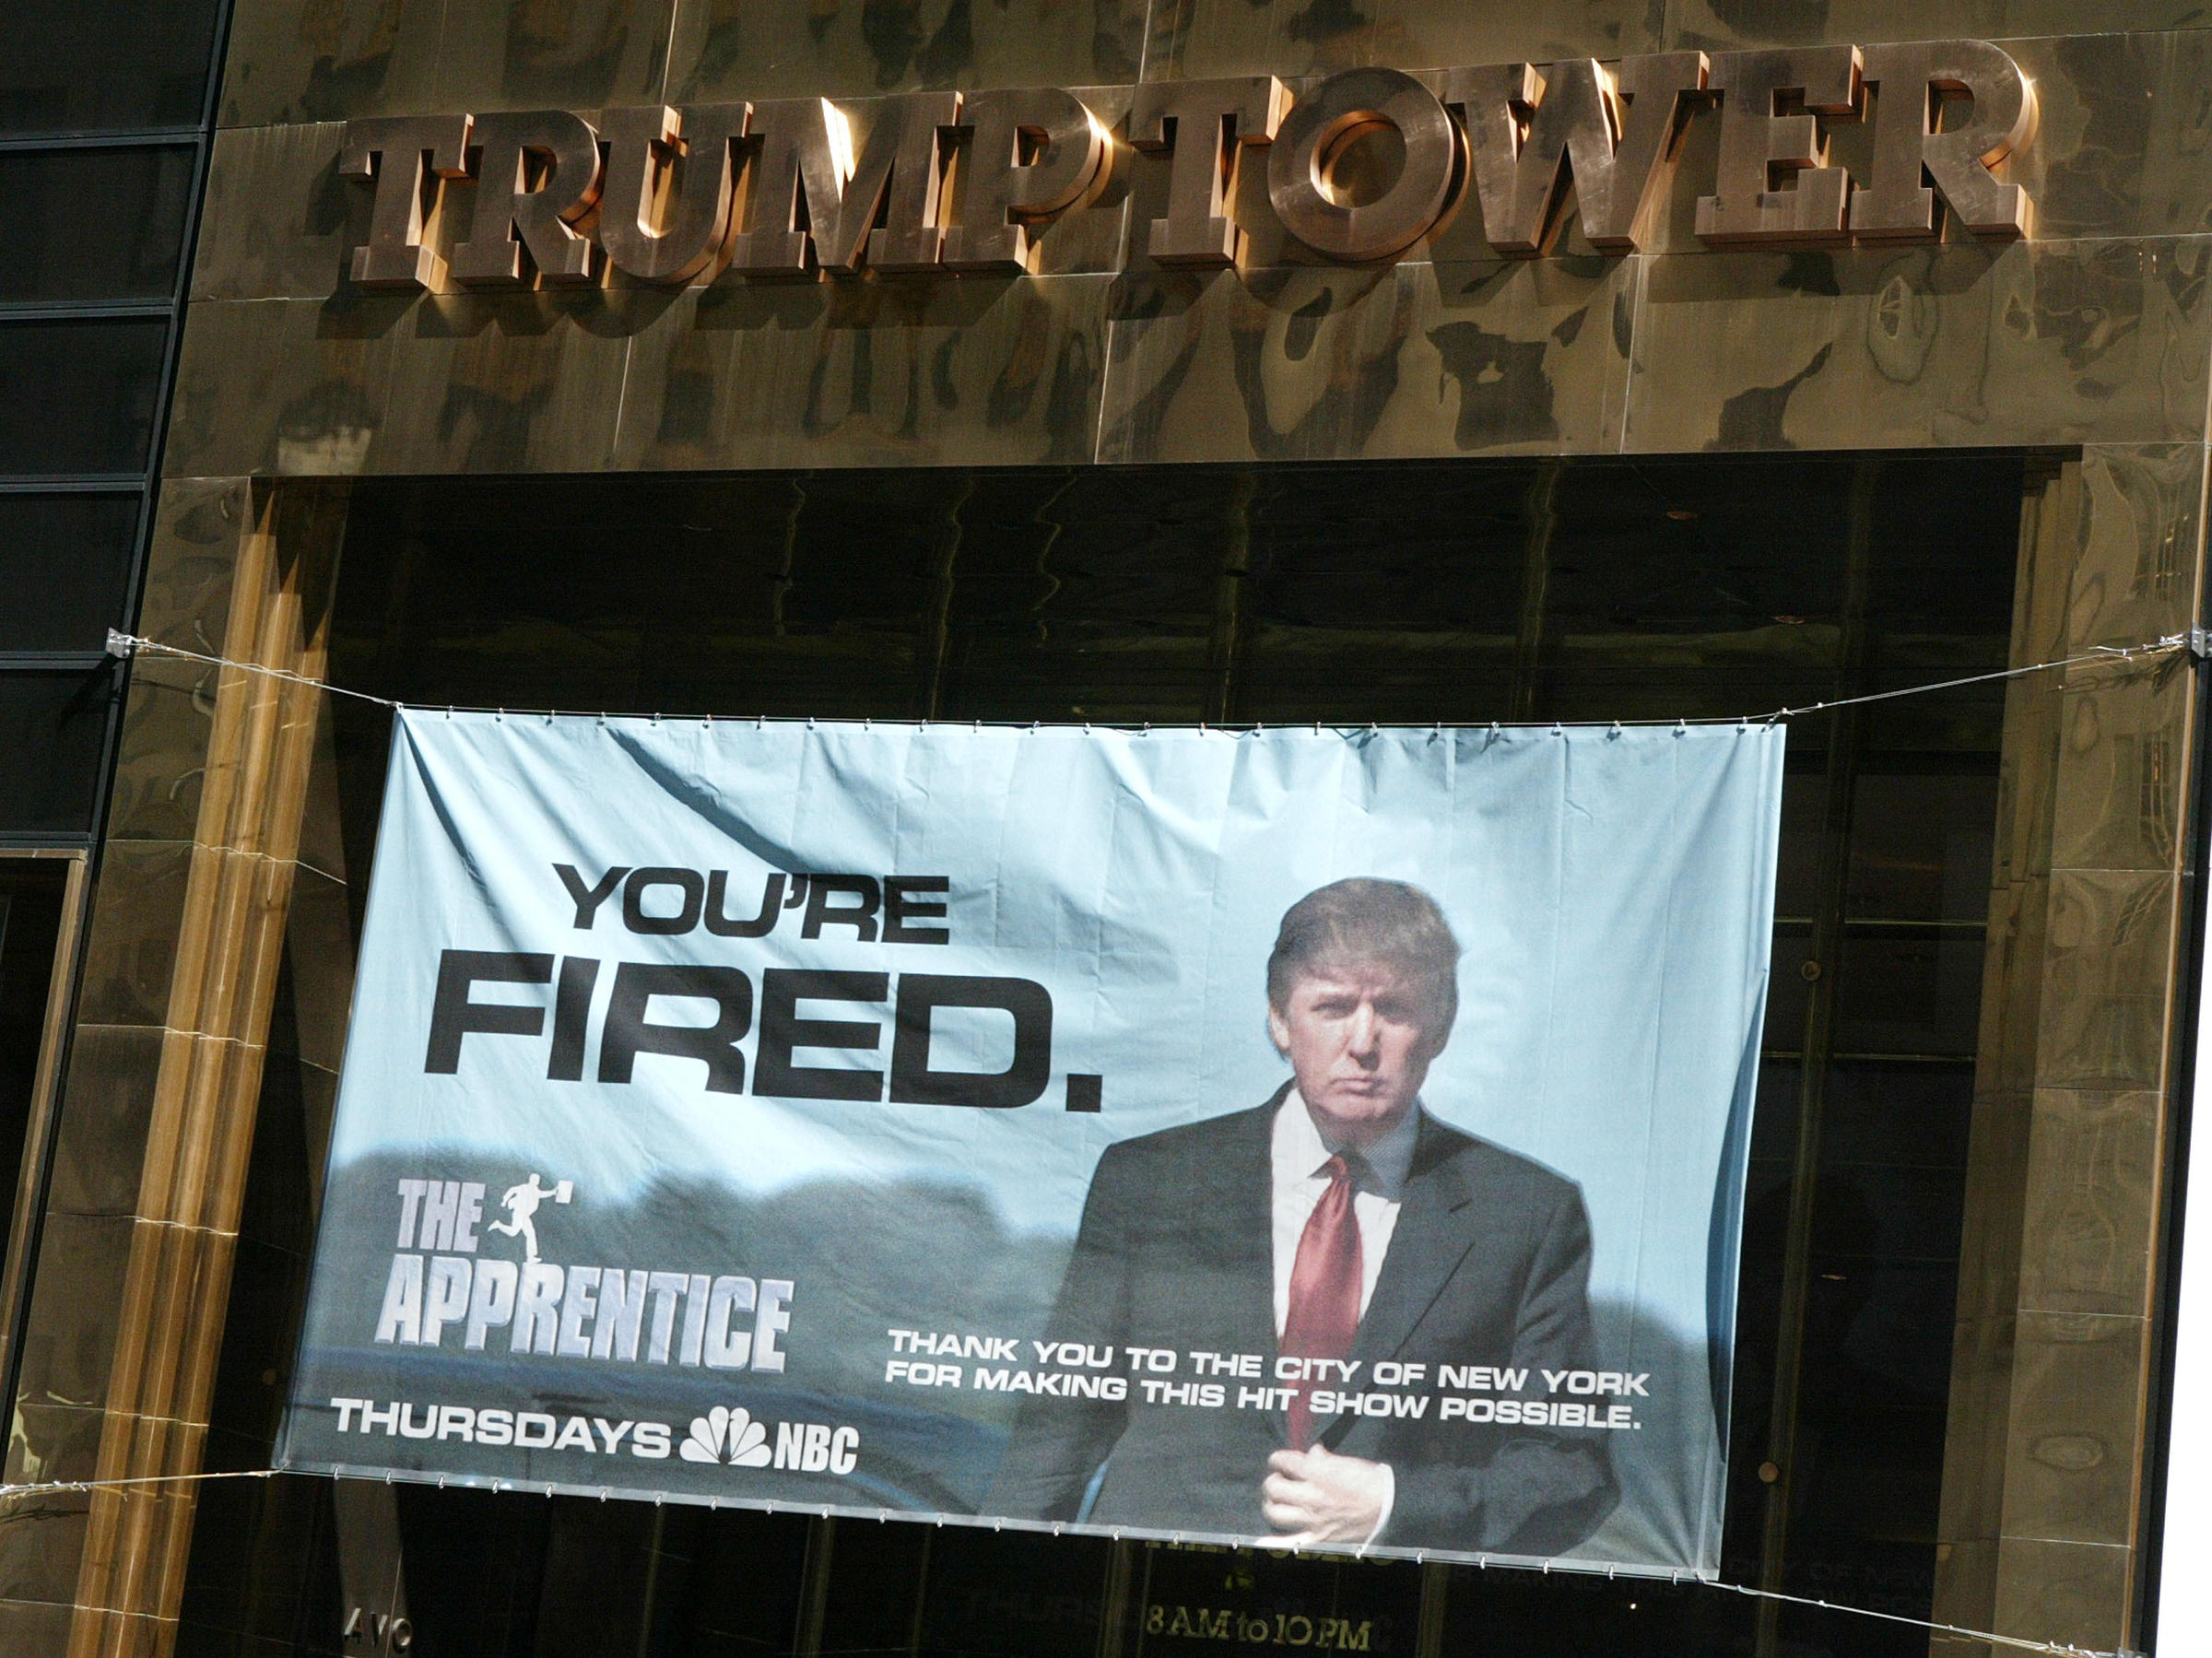 A sign advertising Trump's television show The Apprentice hangs at Trump Towers in New York City in 2004. Courtesy NBC